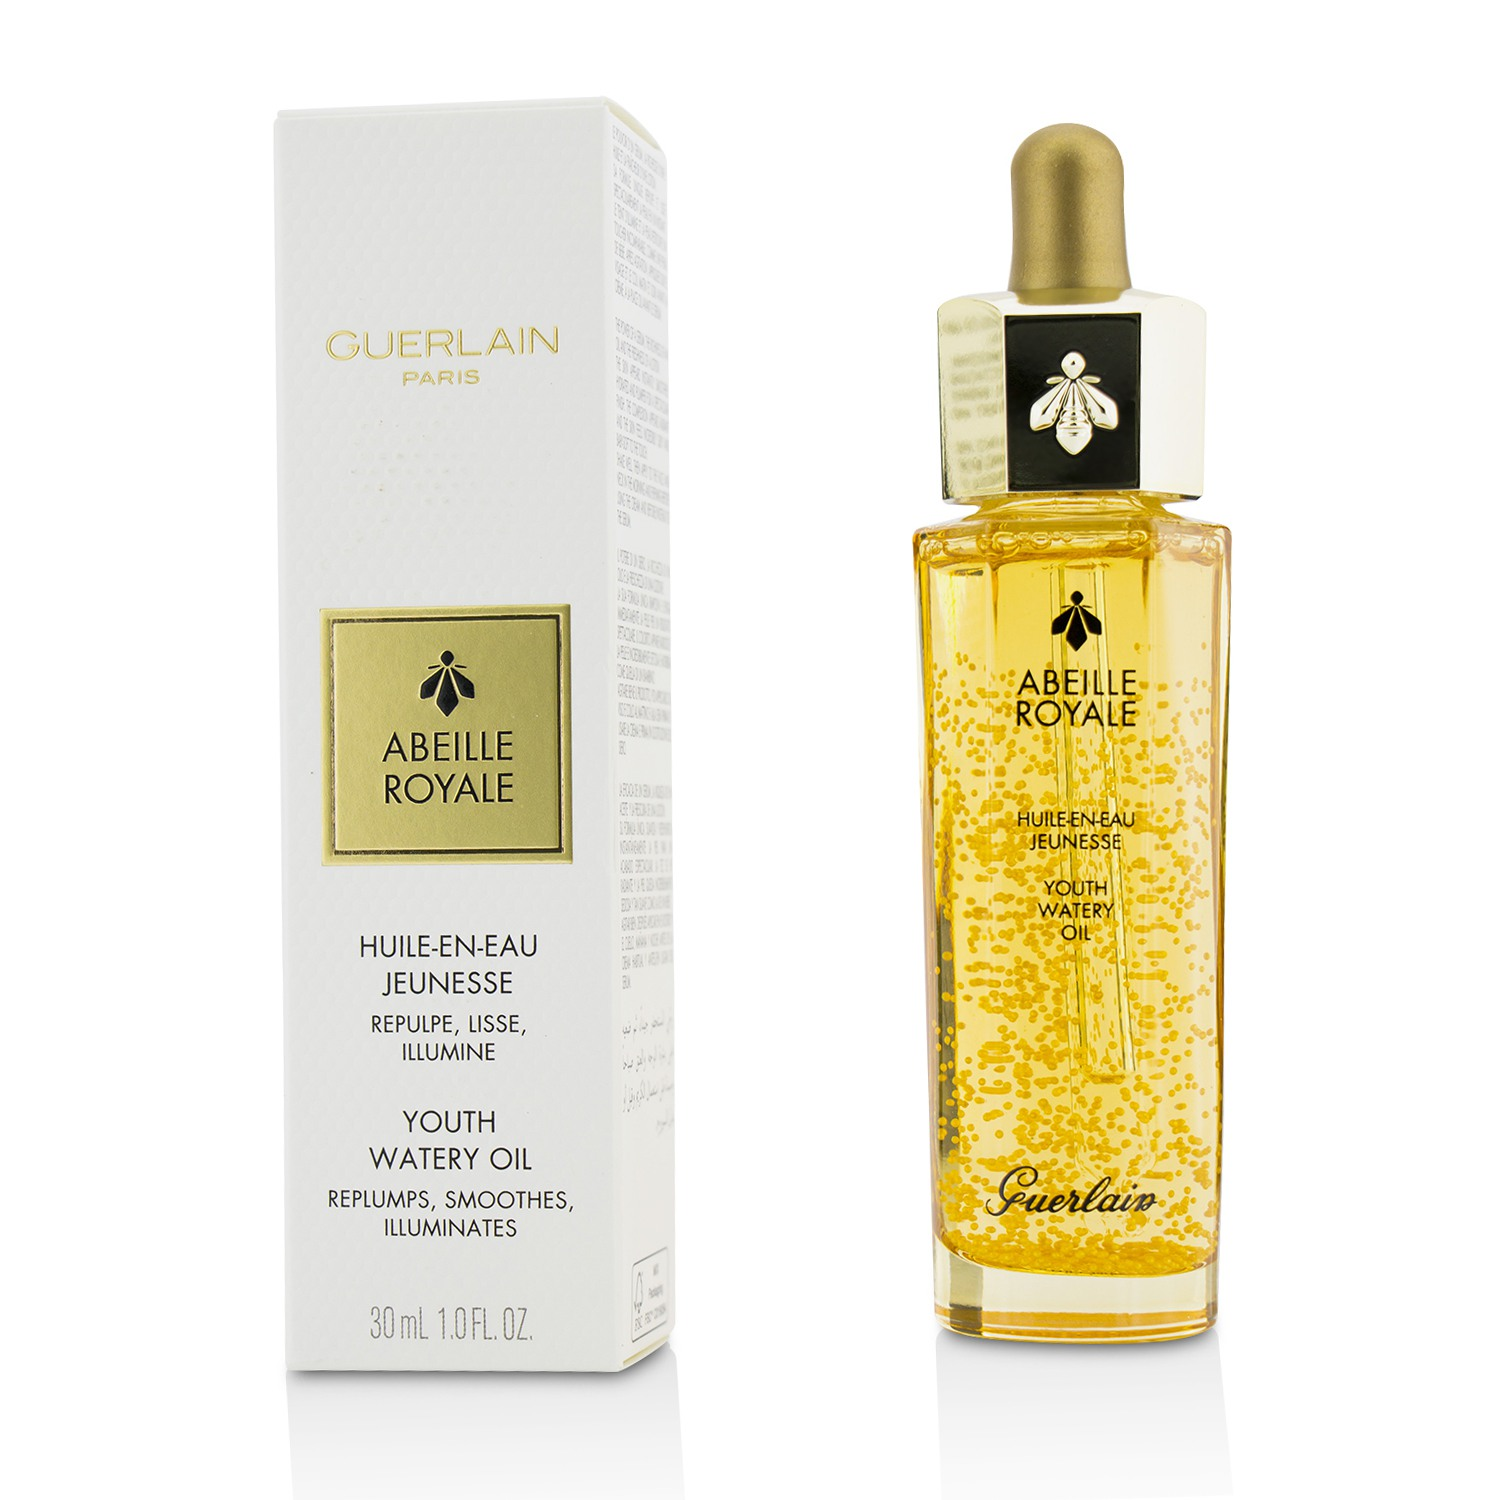 Abeille Royale Youth Watery Oil Guerlain Image